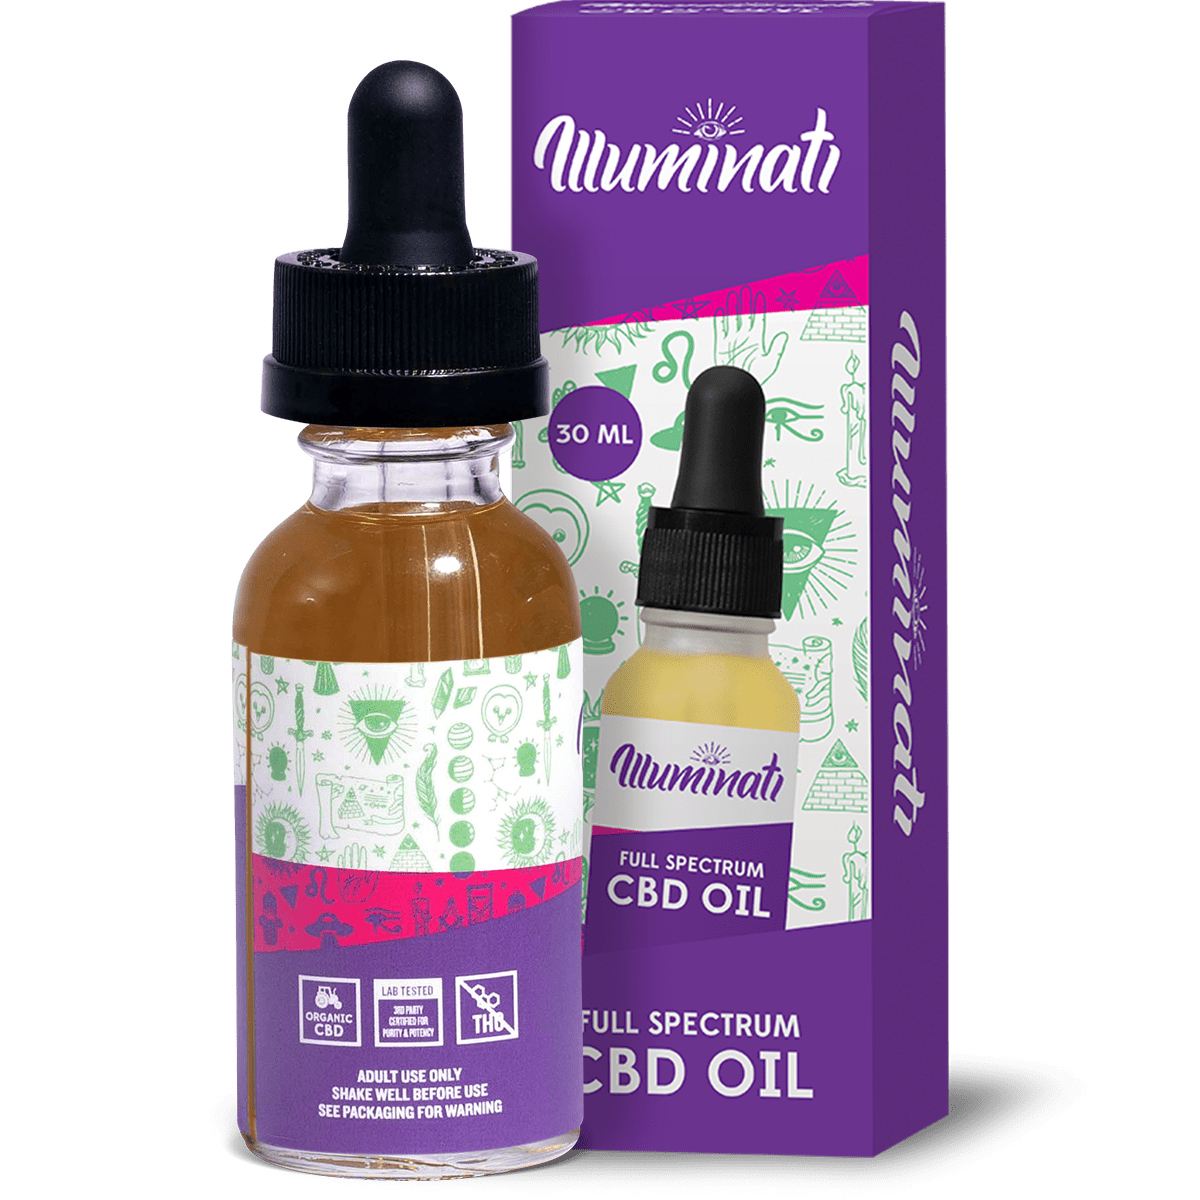 Illuminati Full Spectrum CBD Oil Drops 750mg Back